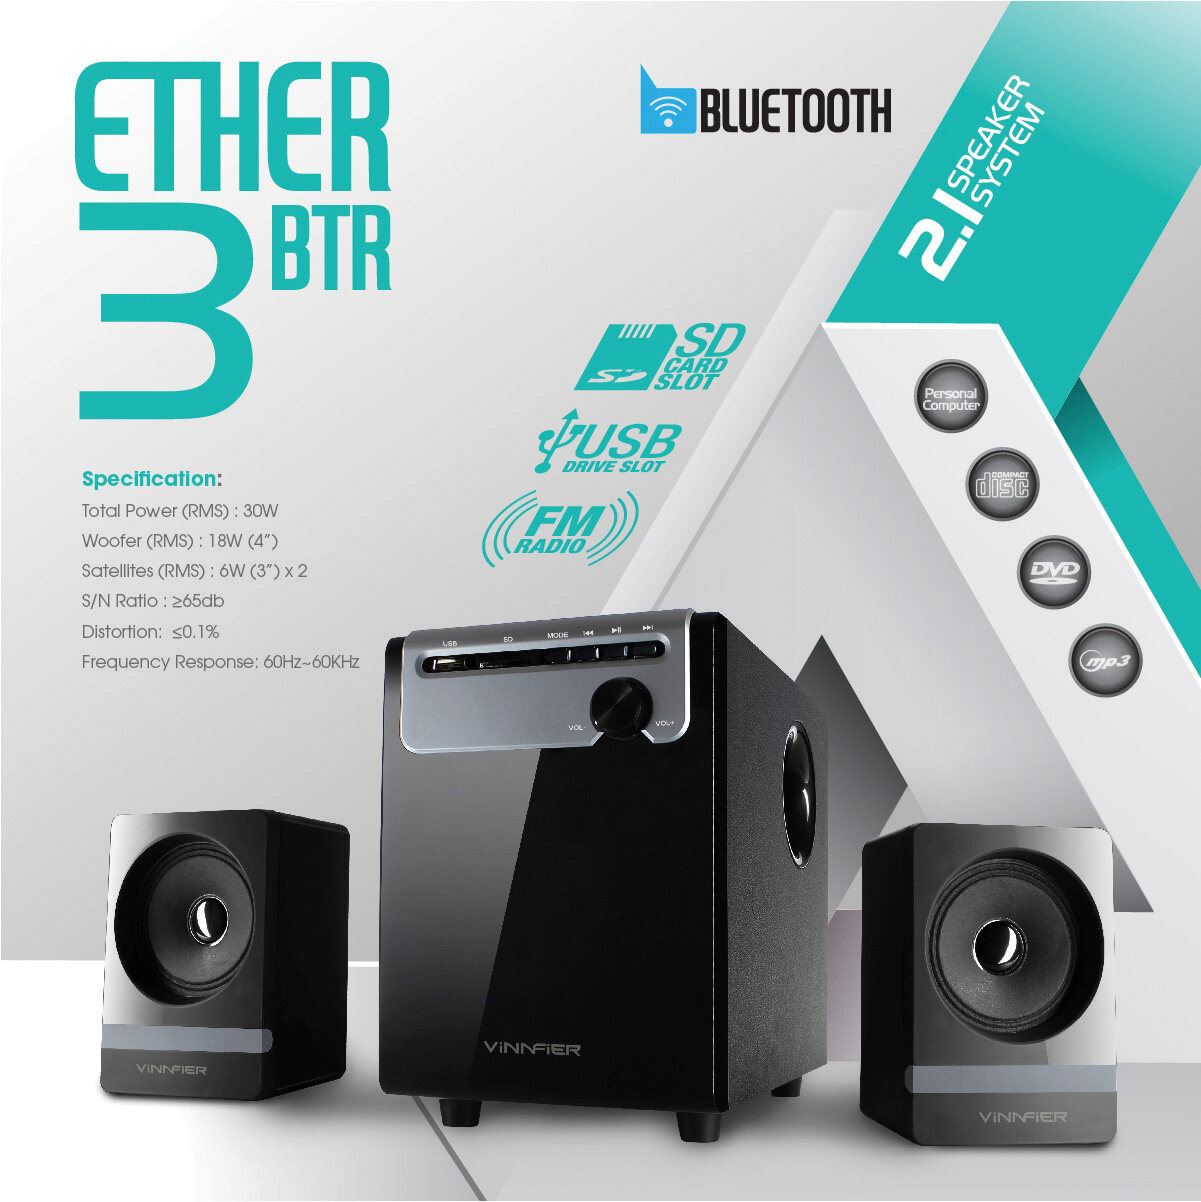 VINNFIER Ether 3 BTR 2.1 Speaker with Built in Bluetooth, FM, Micro SD and USB Malaysia